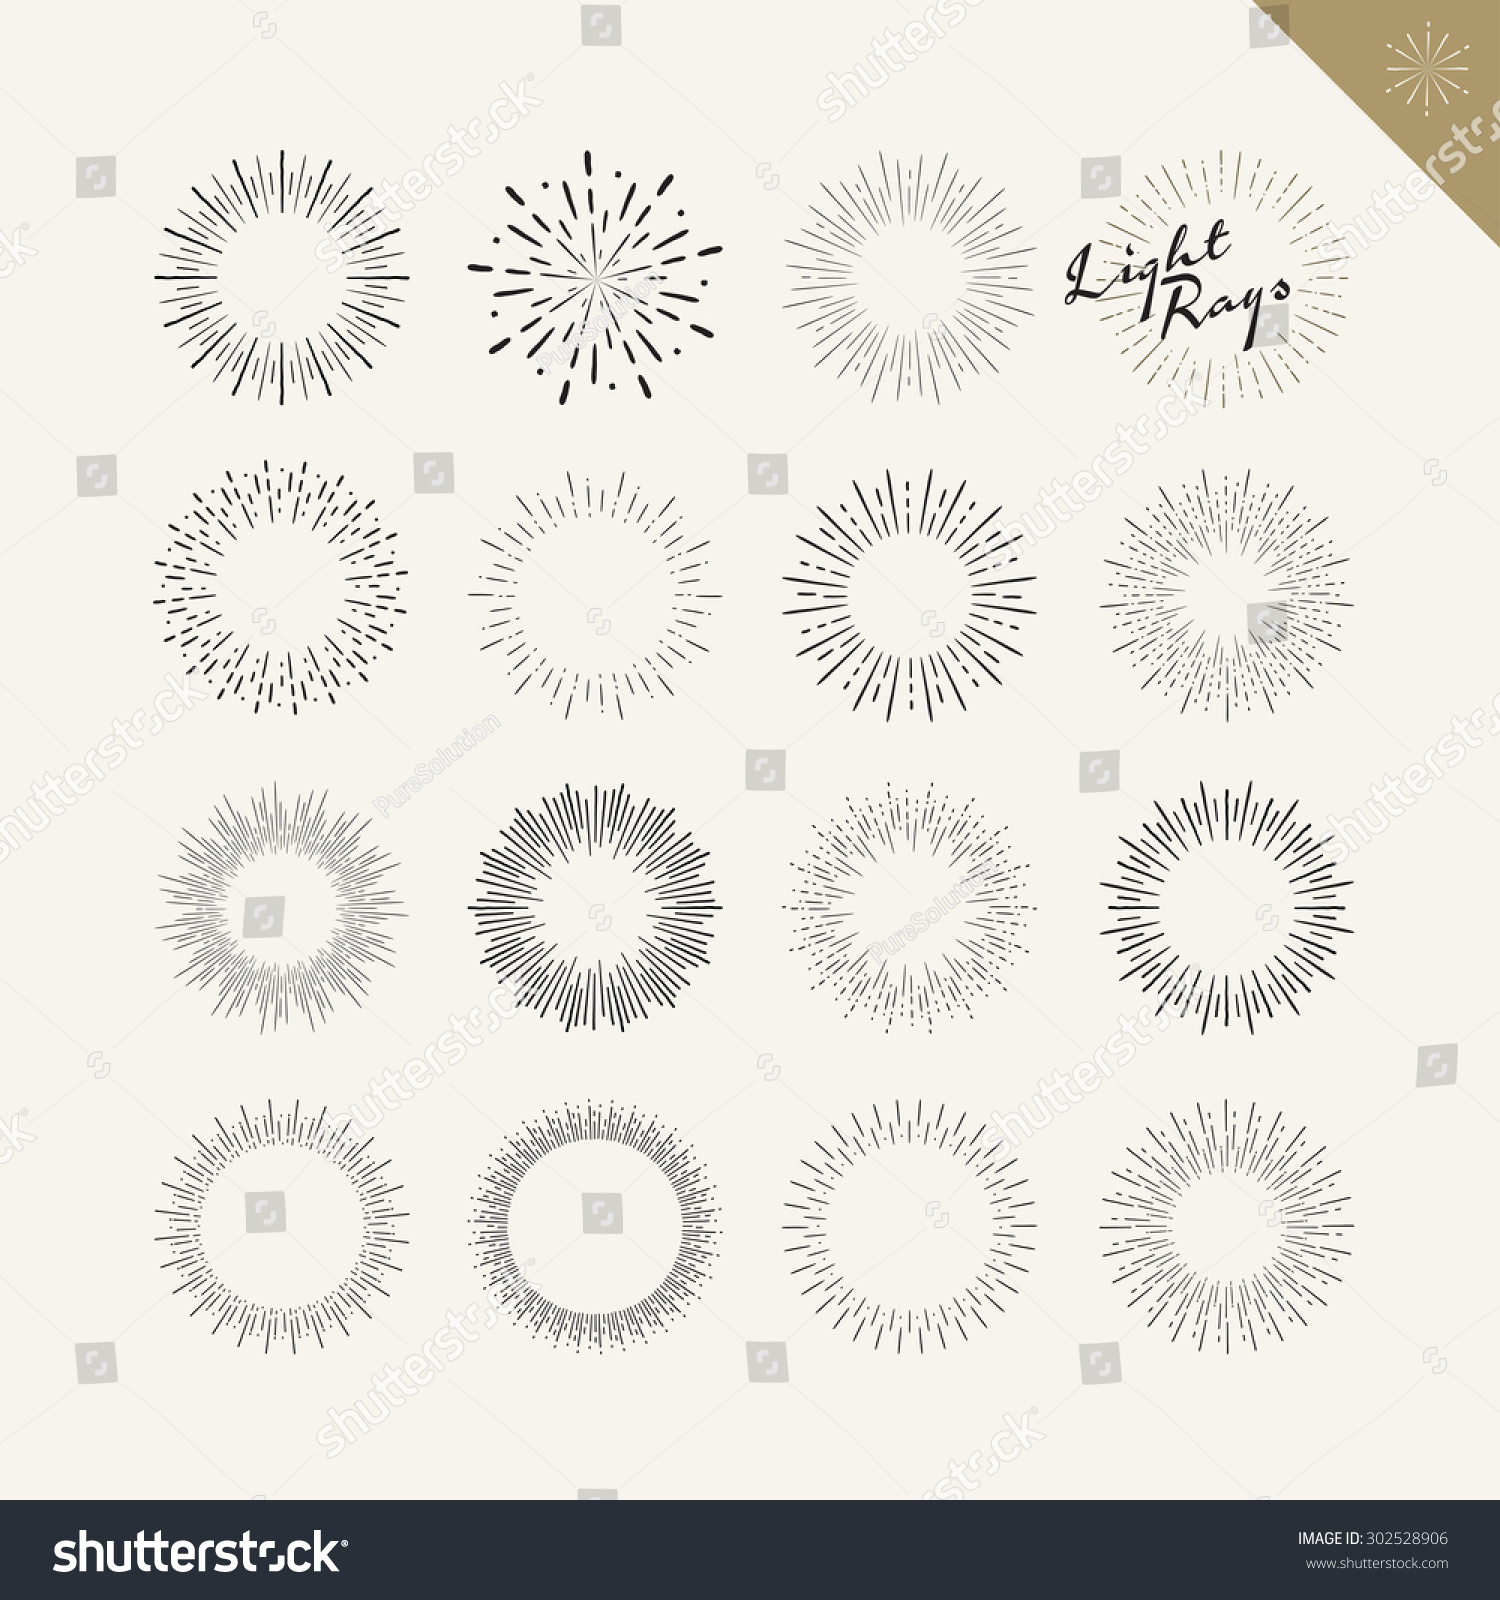 Set Light Rays Vintage Design Elements Stock Vector 302528906 ... for Vector Light Rays Vintage  103wja